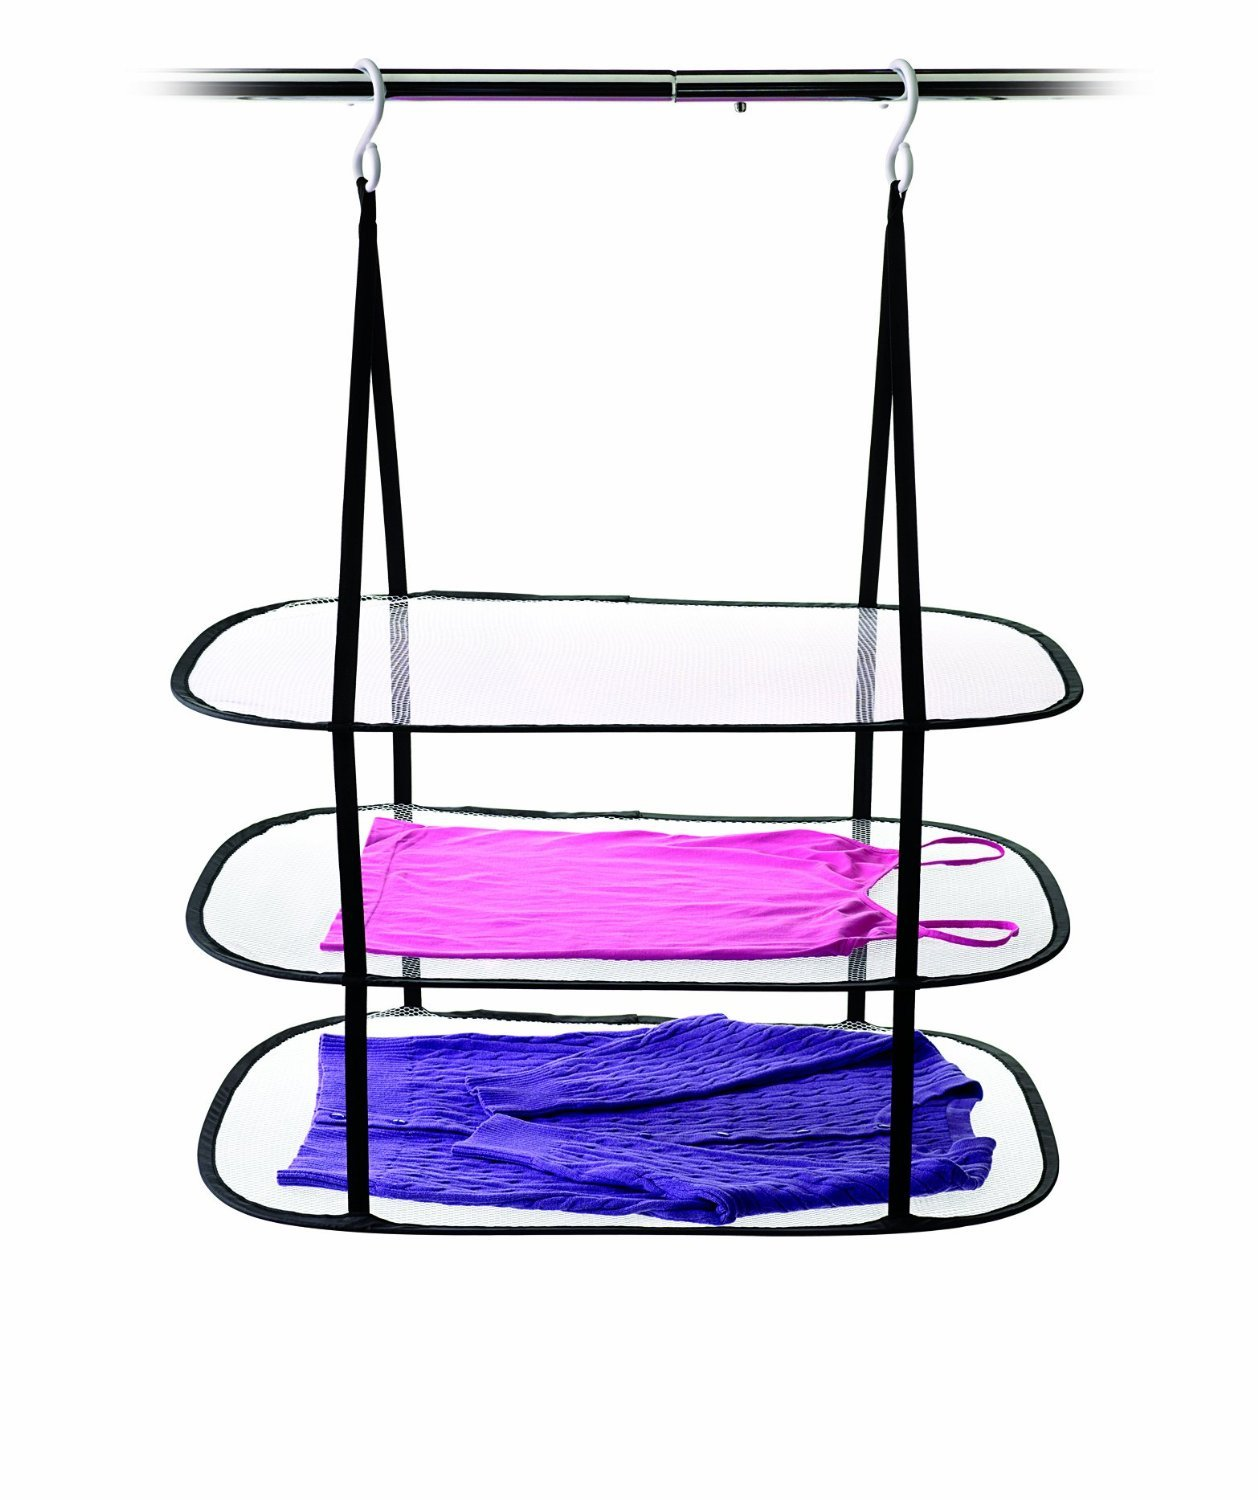 HOMZ Hanging Sweater/Delicates/Swimsuit Dryer, 3 Tier Drying Surface, 10Lb Capacity